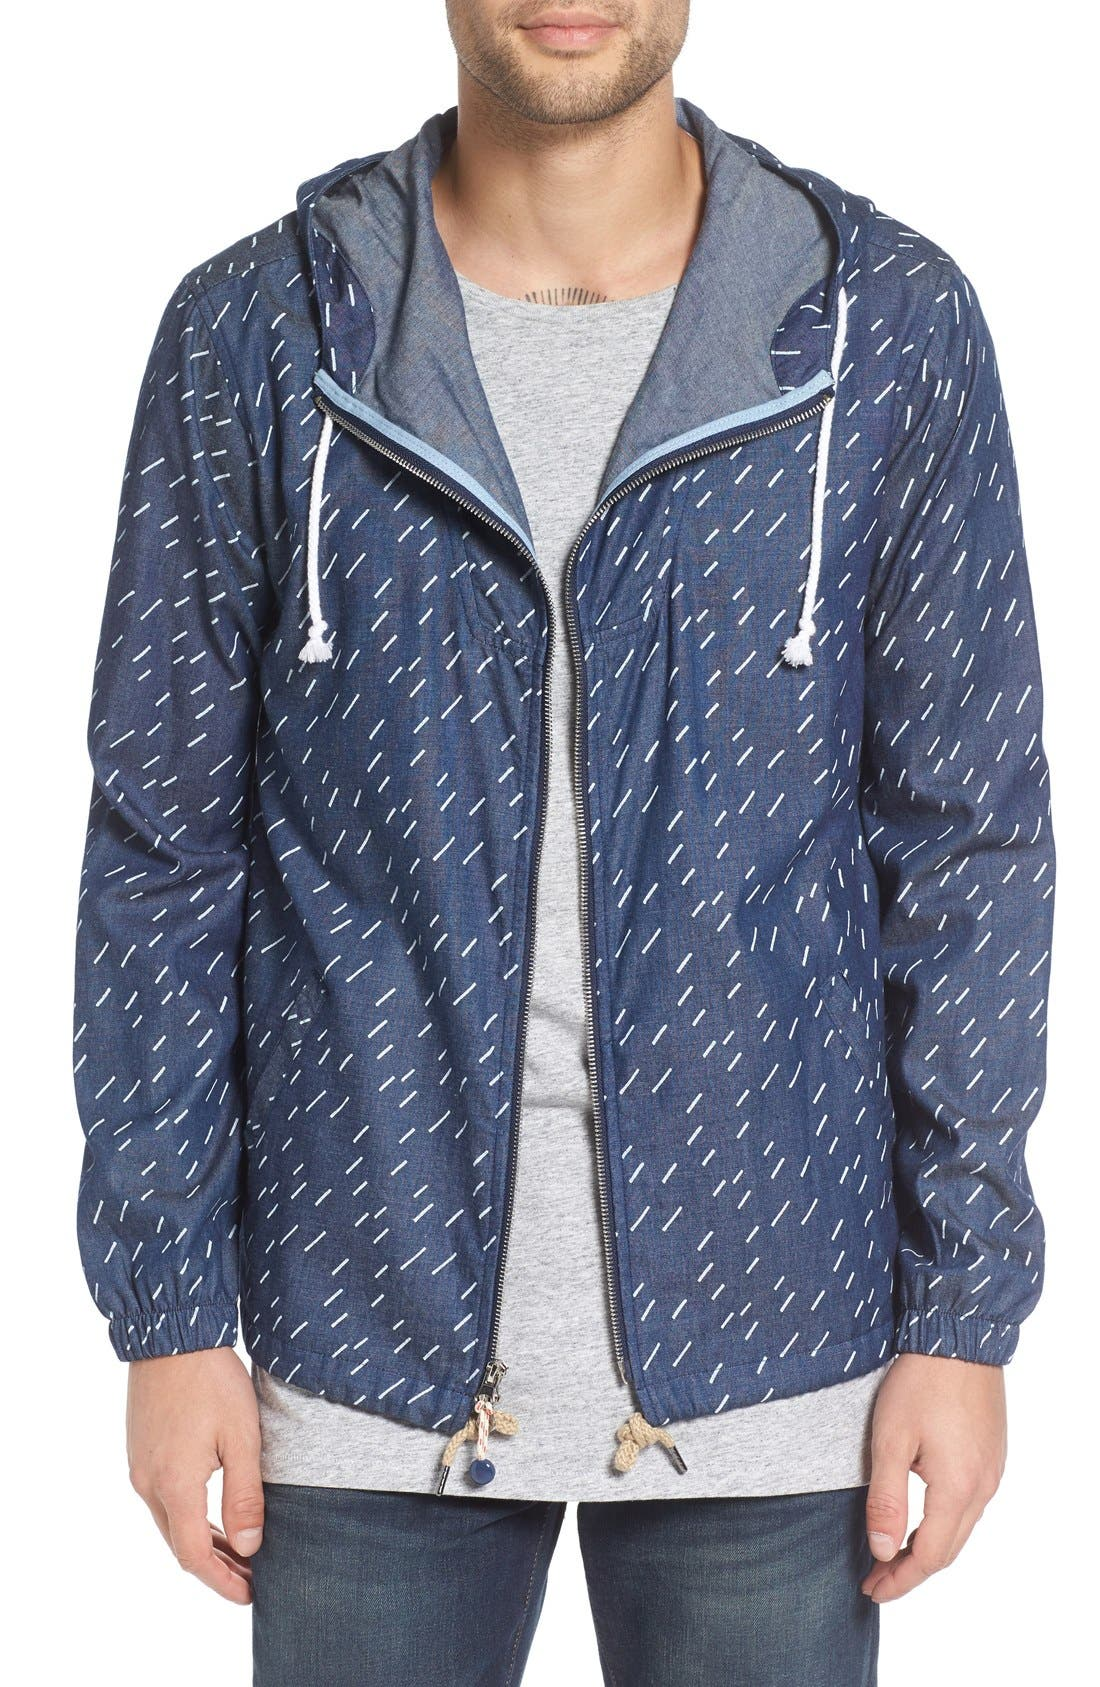 ALTRU 'Foundry' Rain Print Chambray Jacket